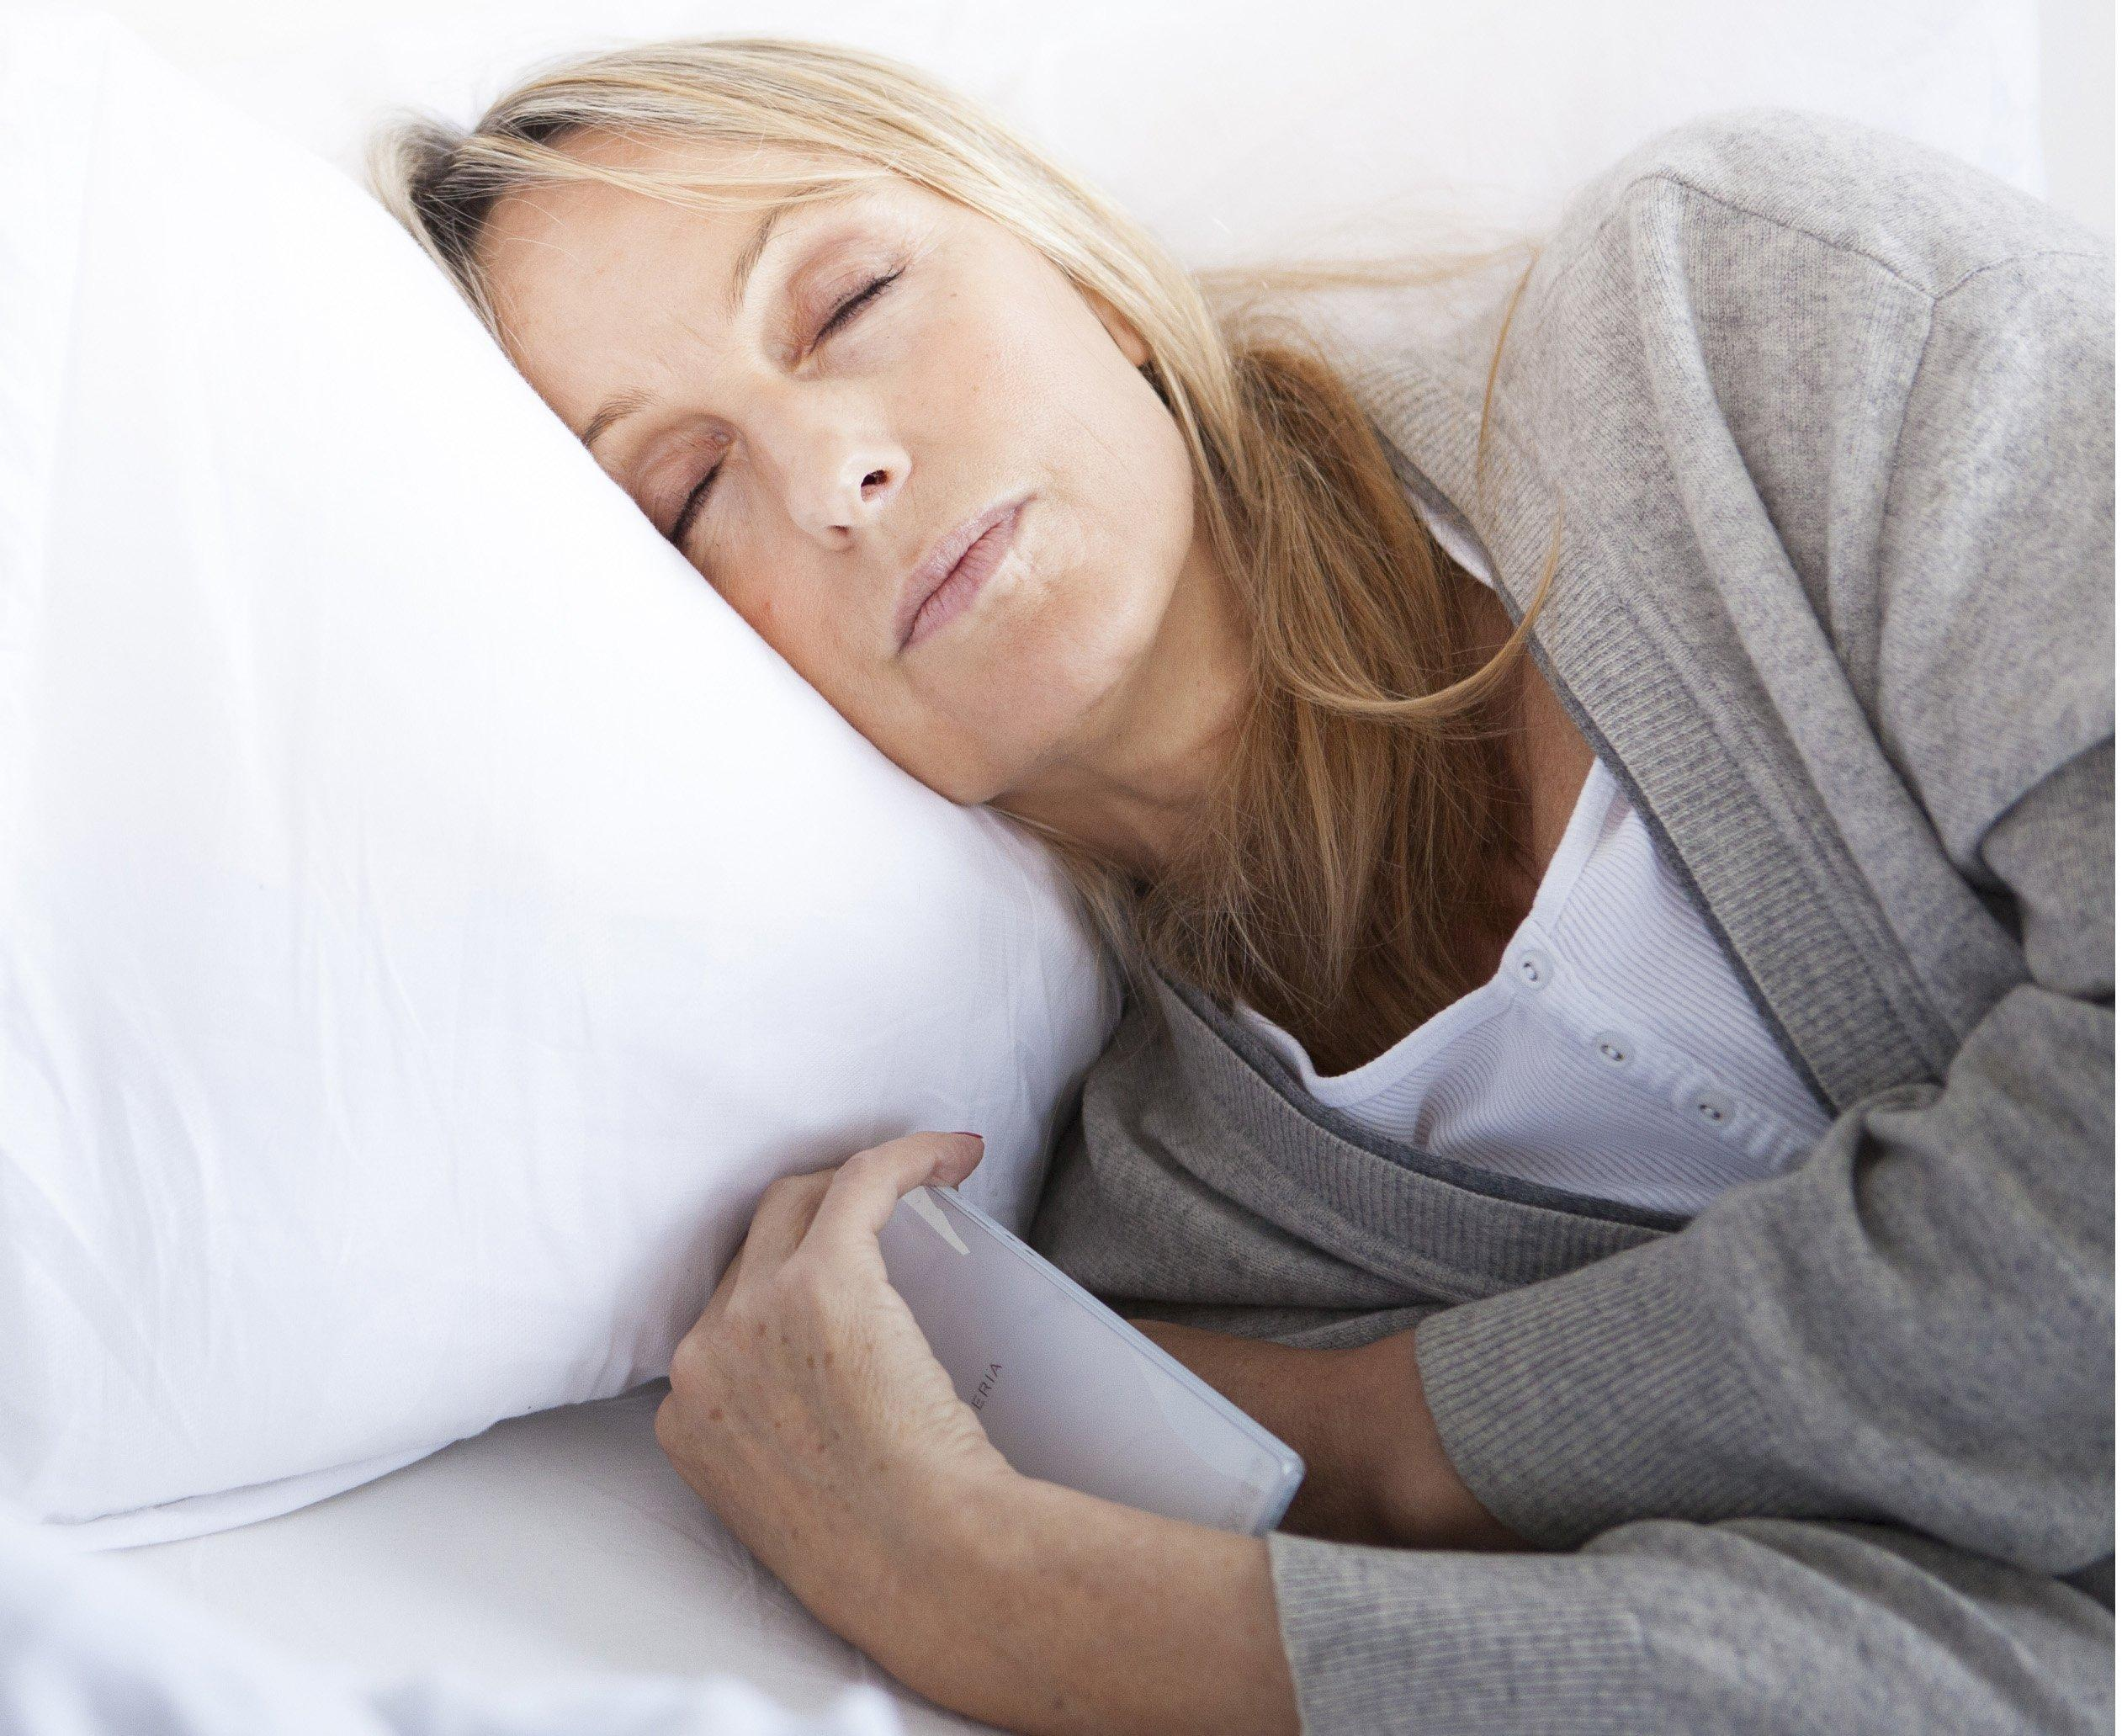 Diabetes And Sleep Apnea: What You Need To Know